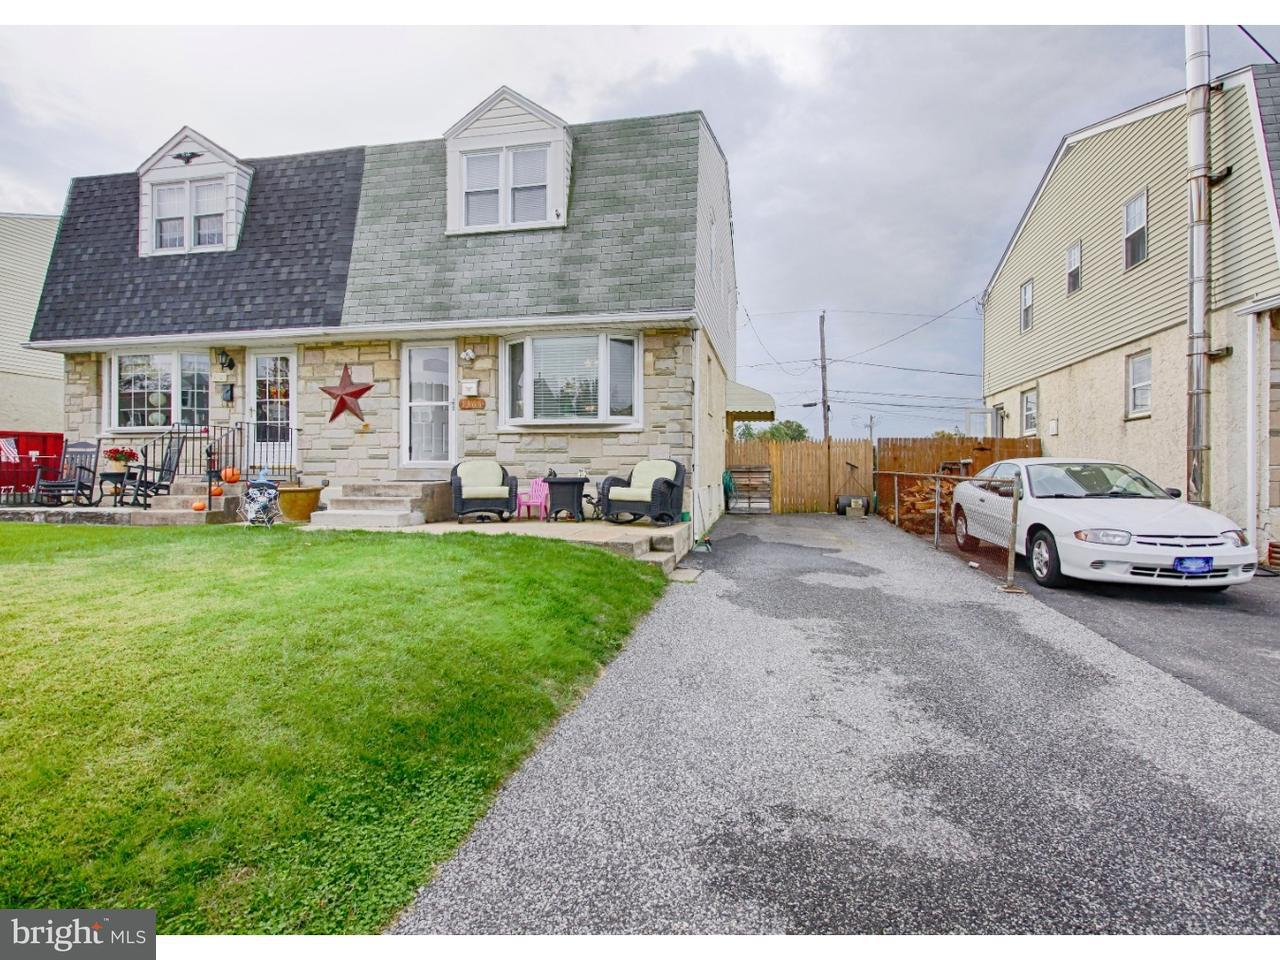 Townhouse for Sale at 1364 LANGLEY Street Trainer, Pennsylvania 19061 United States